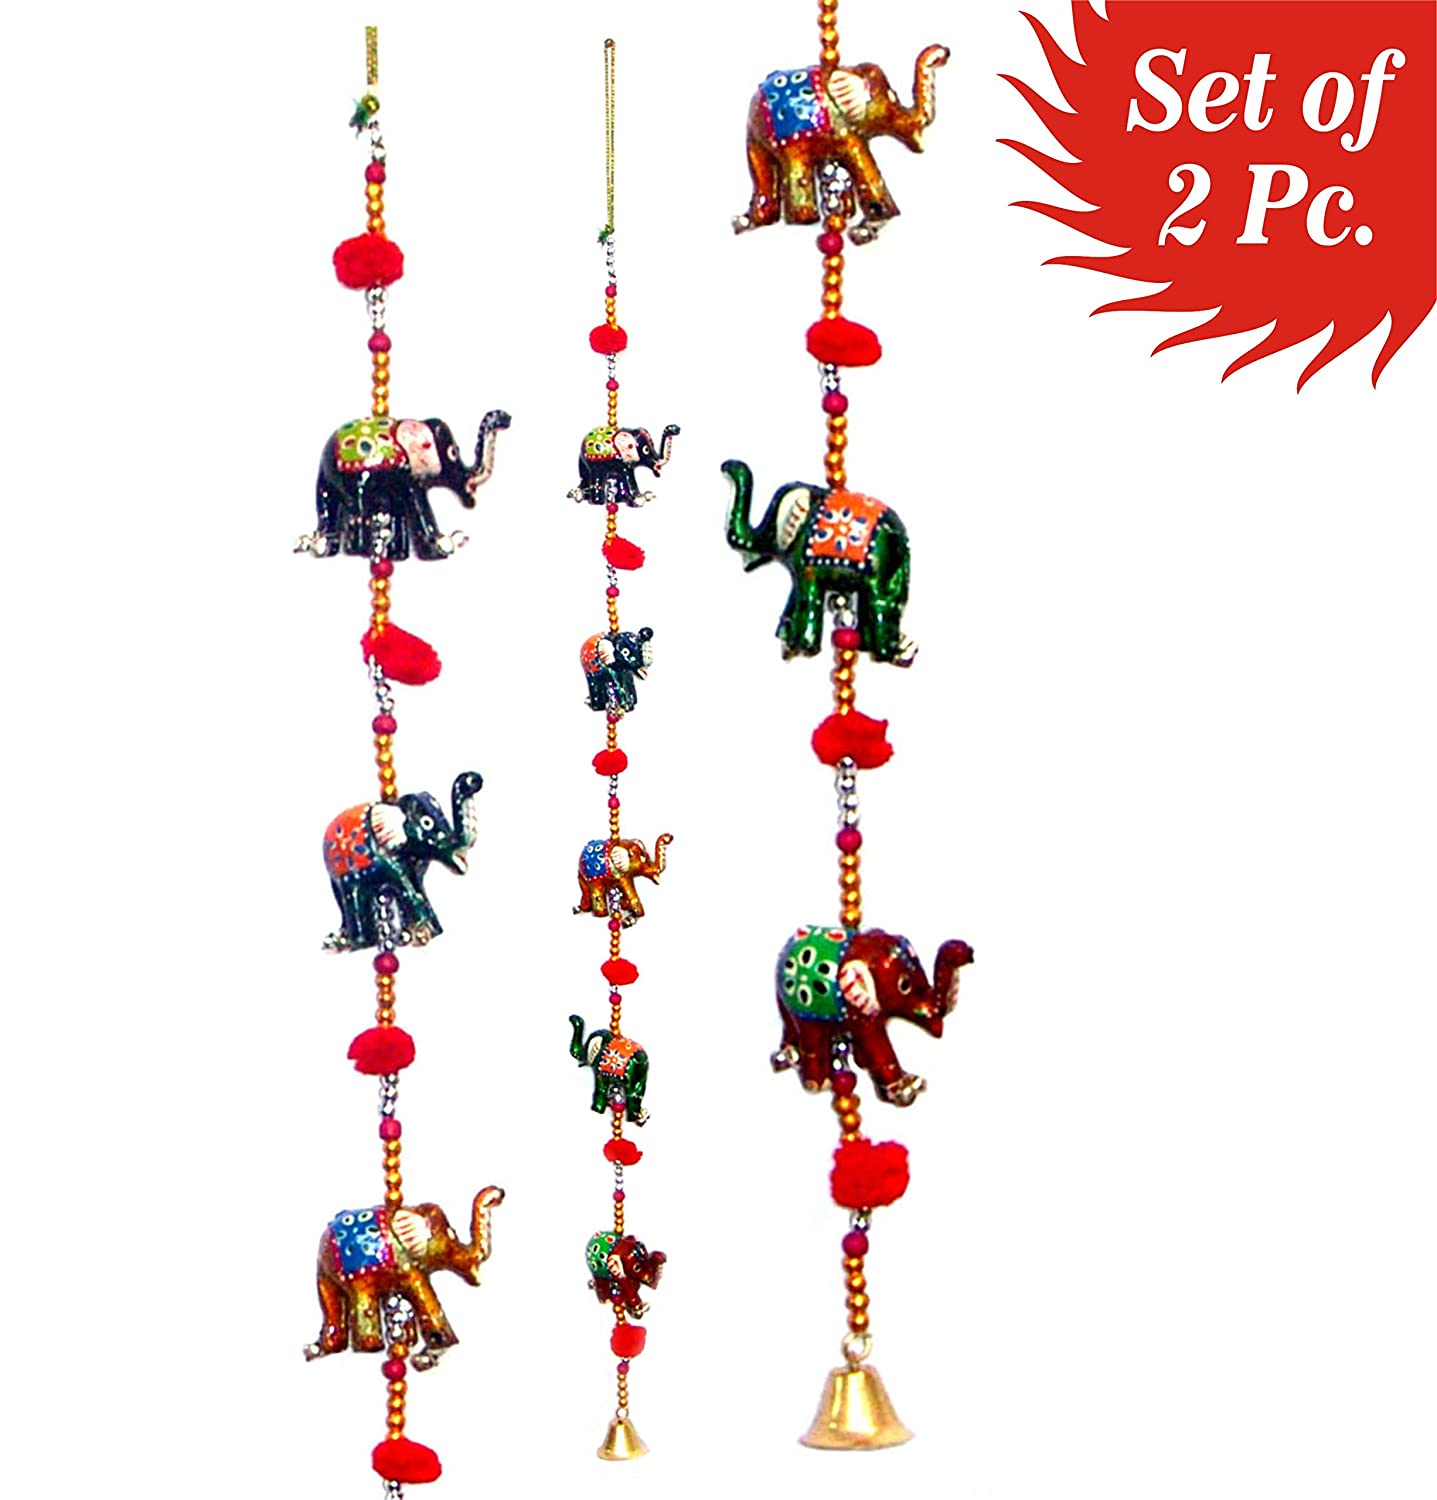 Door Hanging Decorative Five Hand Painted Elephant Stringed Together with Beads and Brass Bell Set of 2 pcs Artisan of India